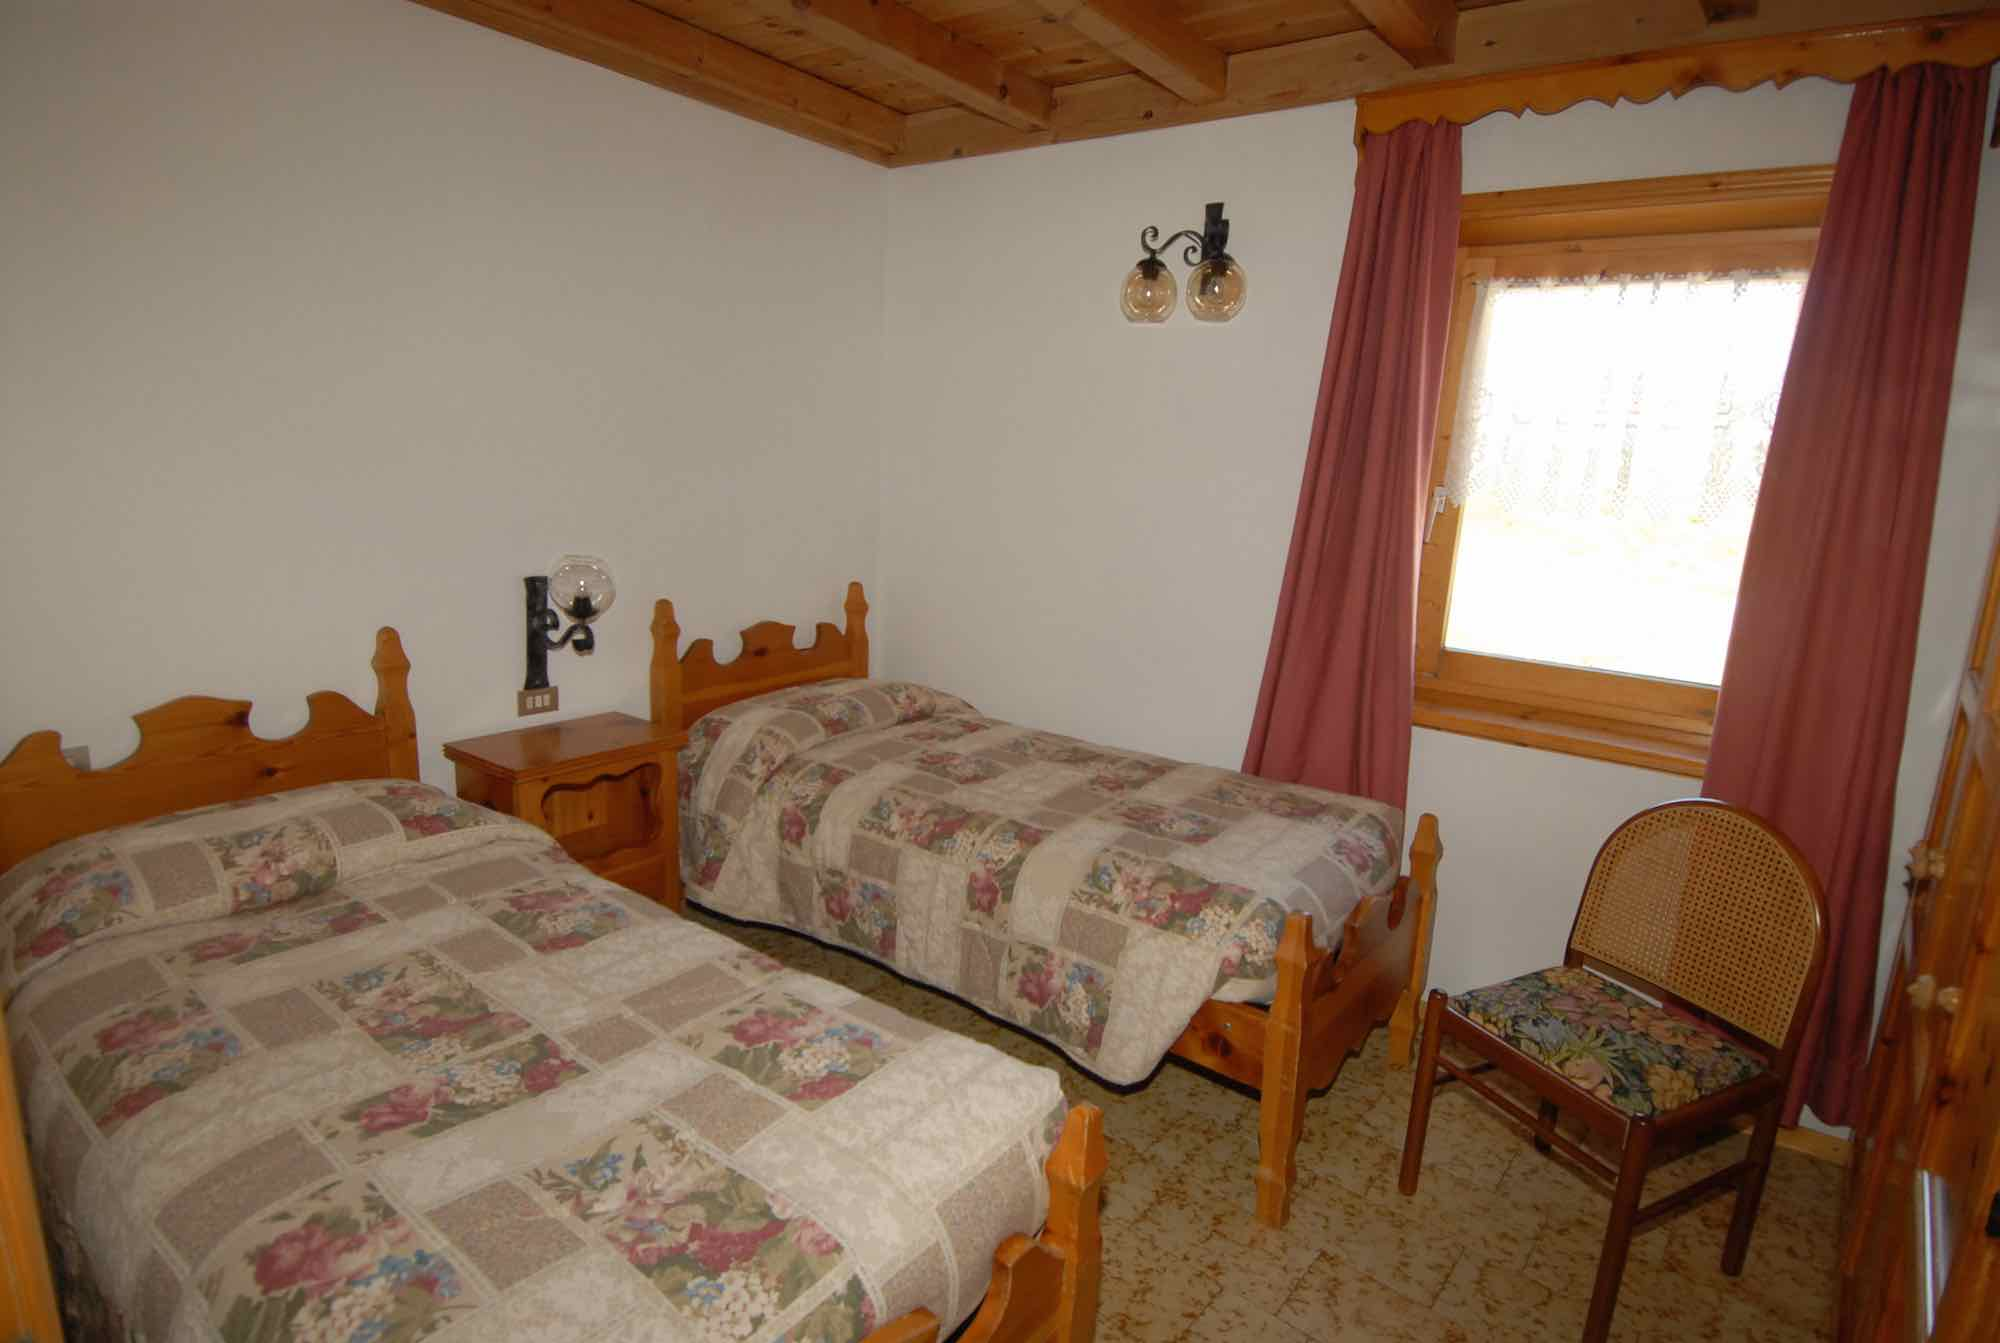 Baita Guana - Via Borch N.800, Livigno 23041 - Apartment - Primo Piano X6 3